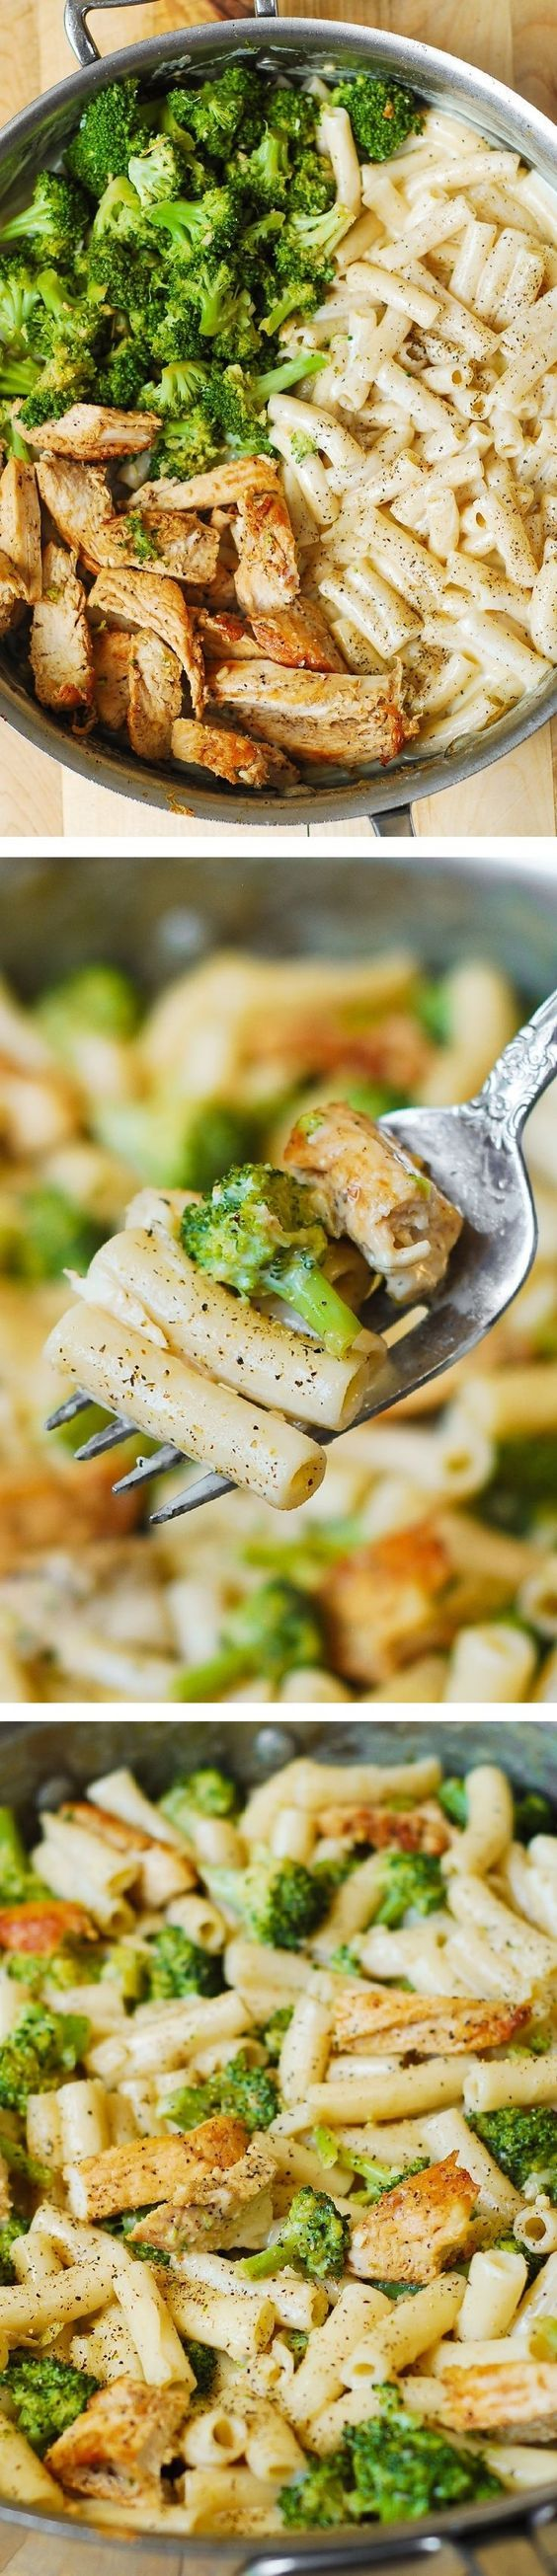 Delicious, creamy chicken breast, broccoli, garlic in a simple, homemade cream sauce. alfredo pasta!: